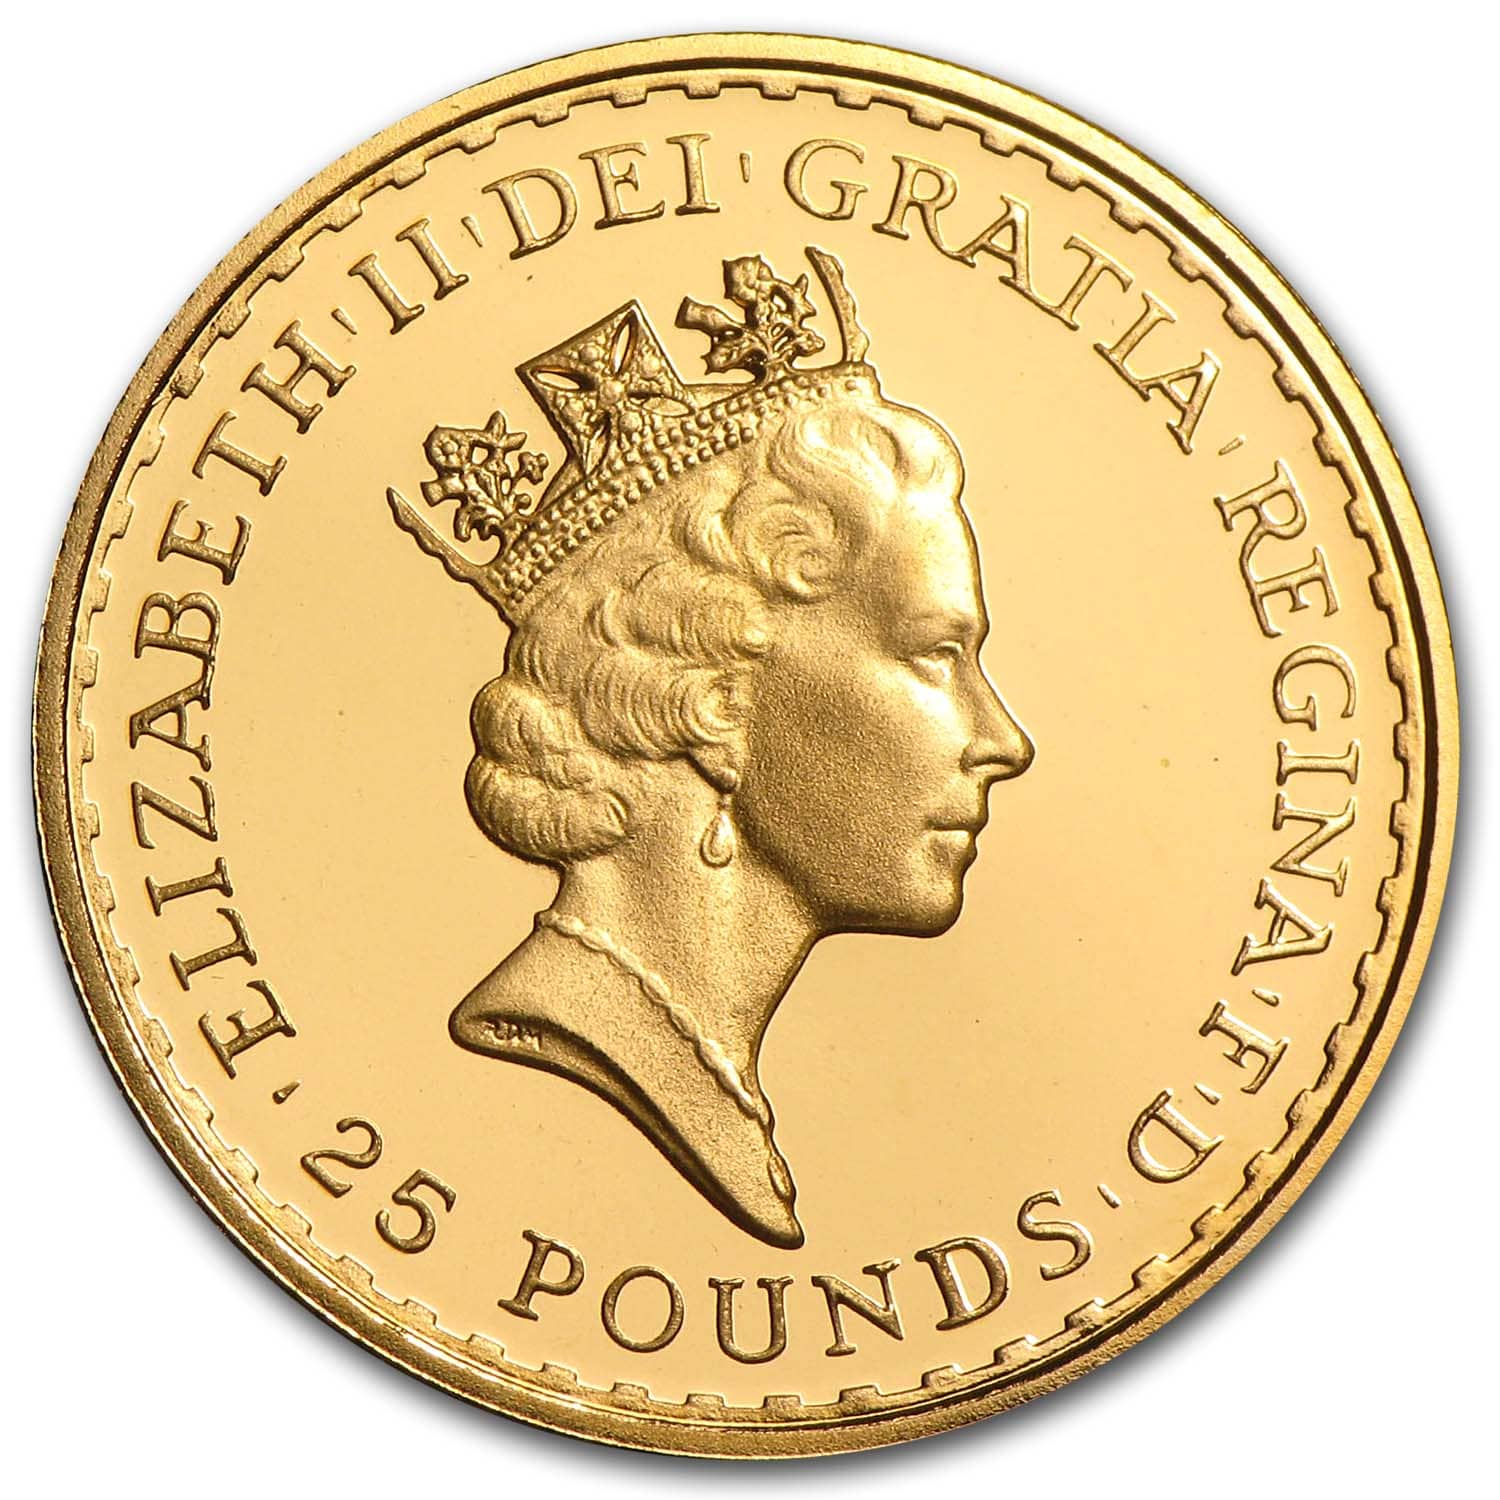 Great Britain 1/4 oz Gold Britannia BU/Proof (Random Year)